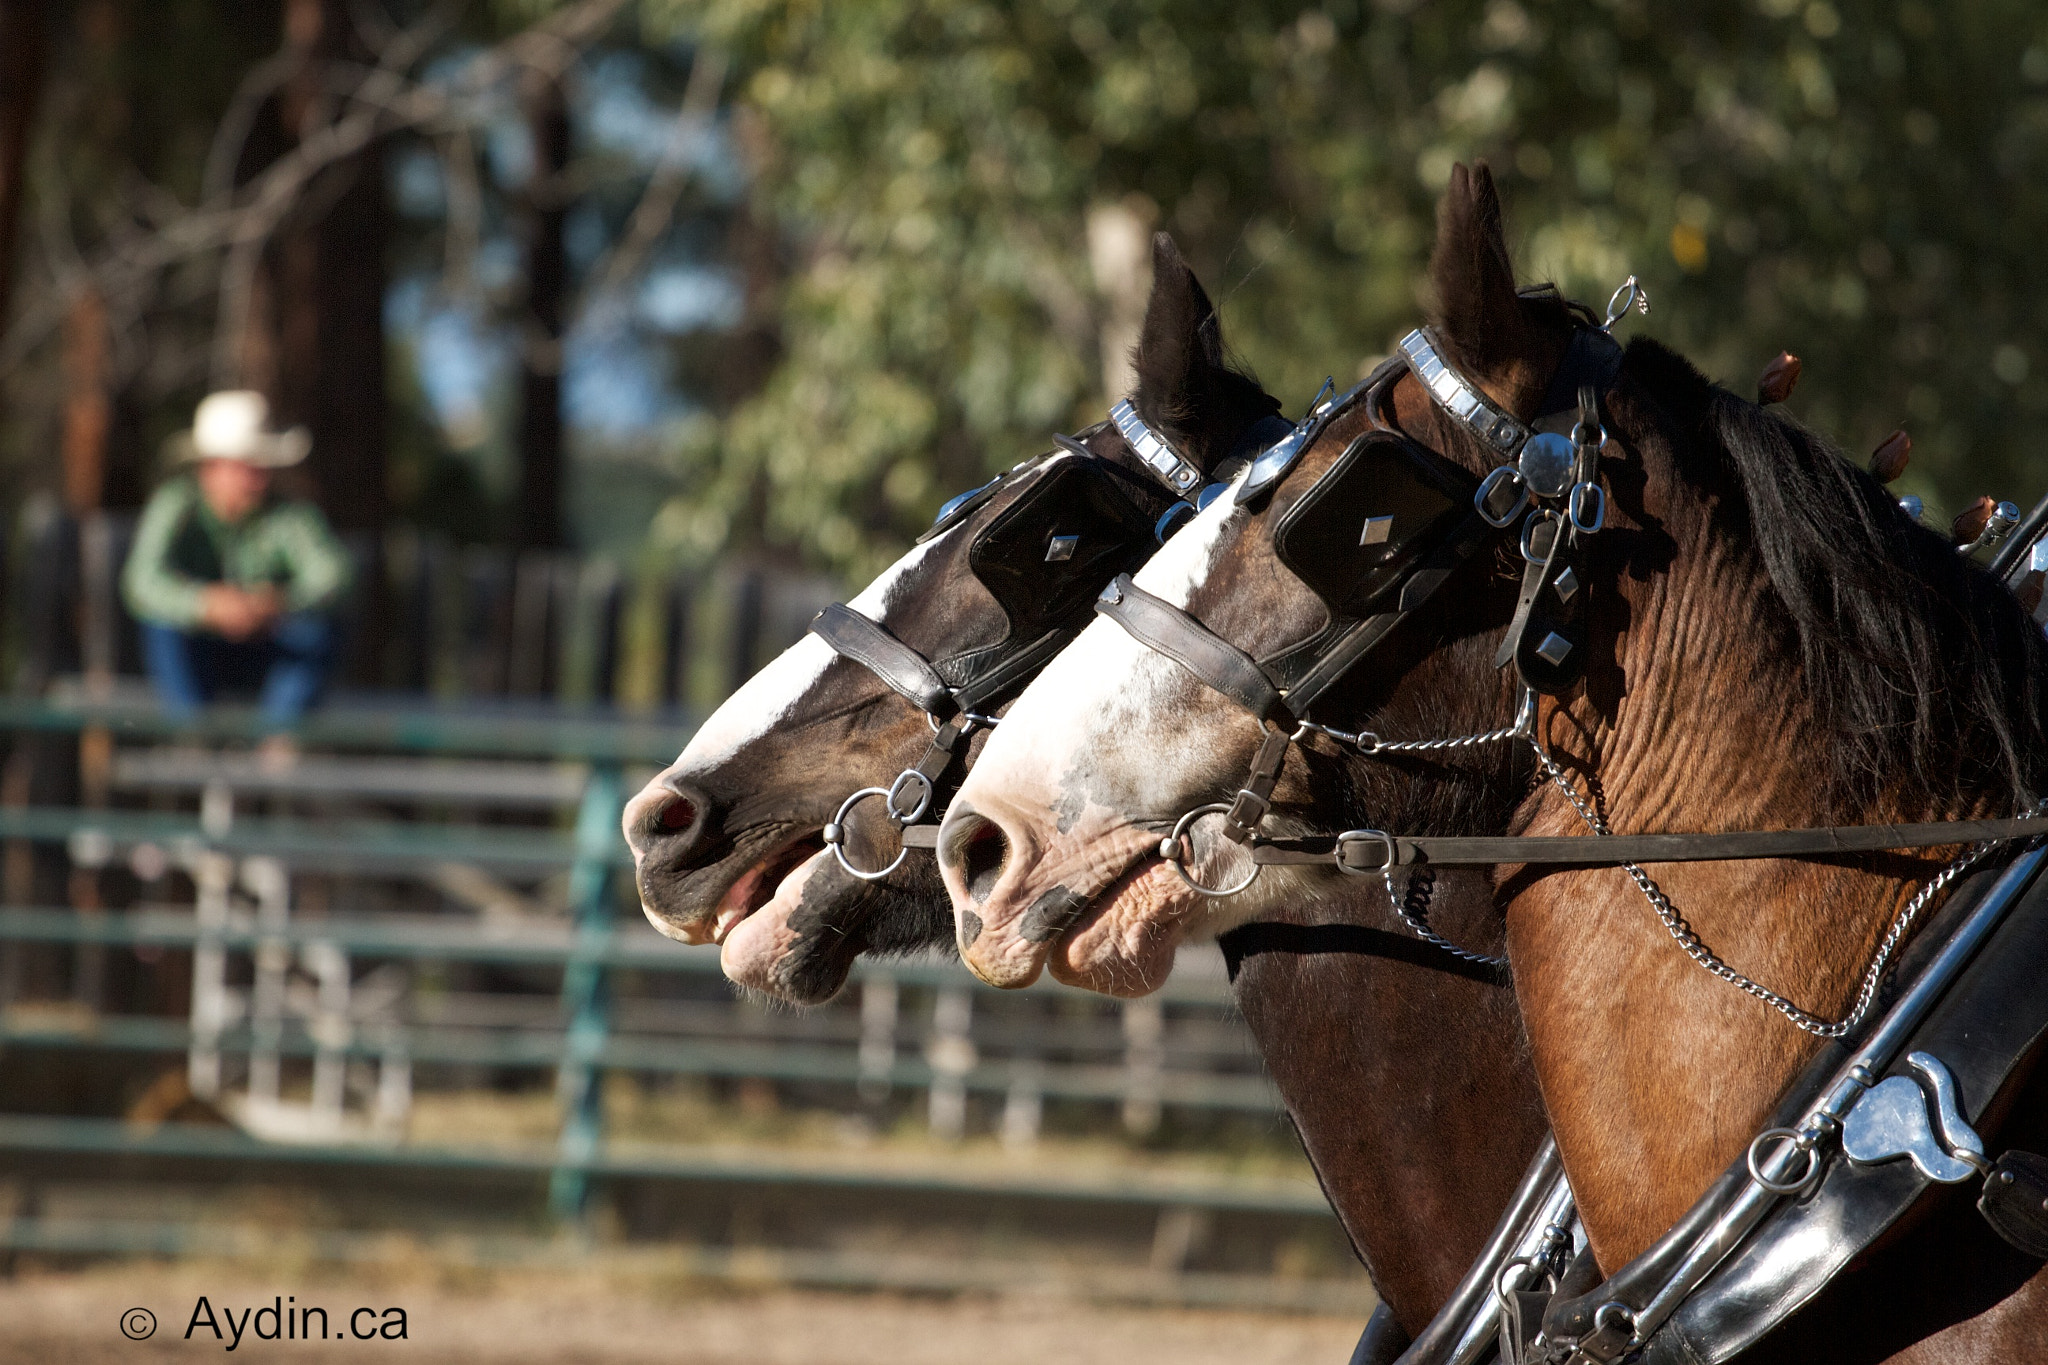 Photograph Horse at Rodeo by Aydin Odyakmaz on 500px